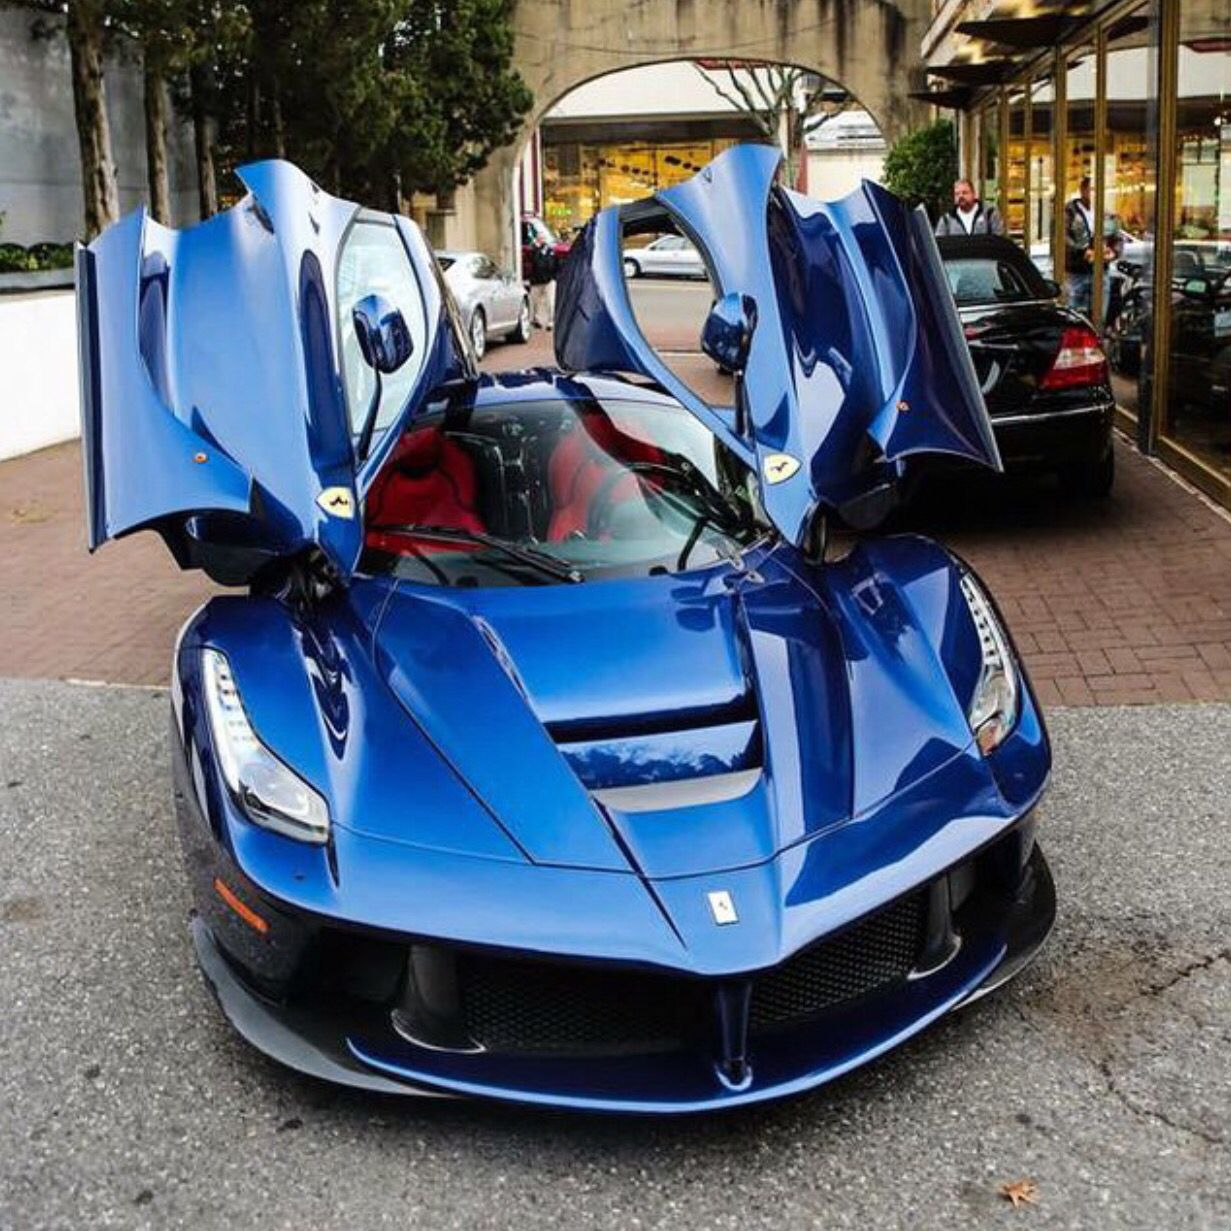 Best 30 Luxury Porsche Sport Cars Collections: Ferrari LaFerrari Painted In Blu Tour De France Photo